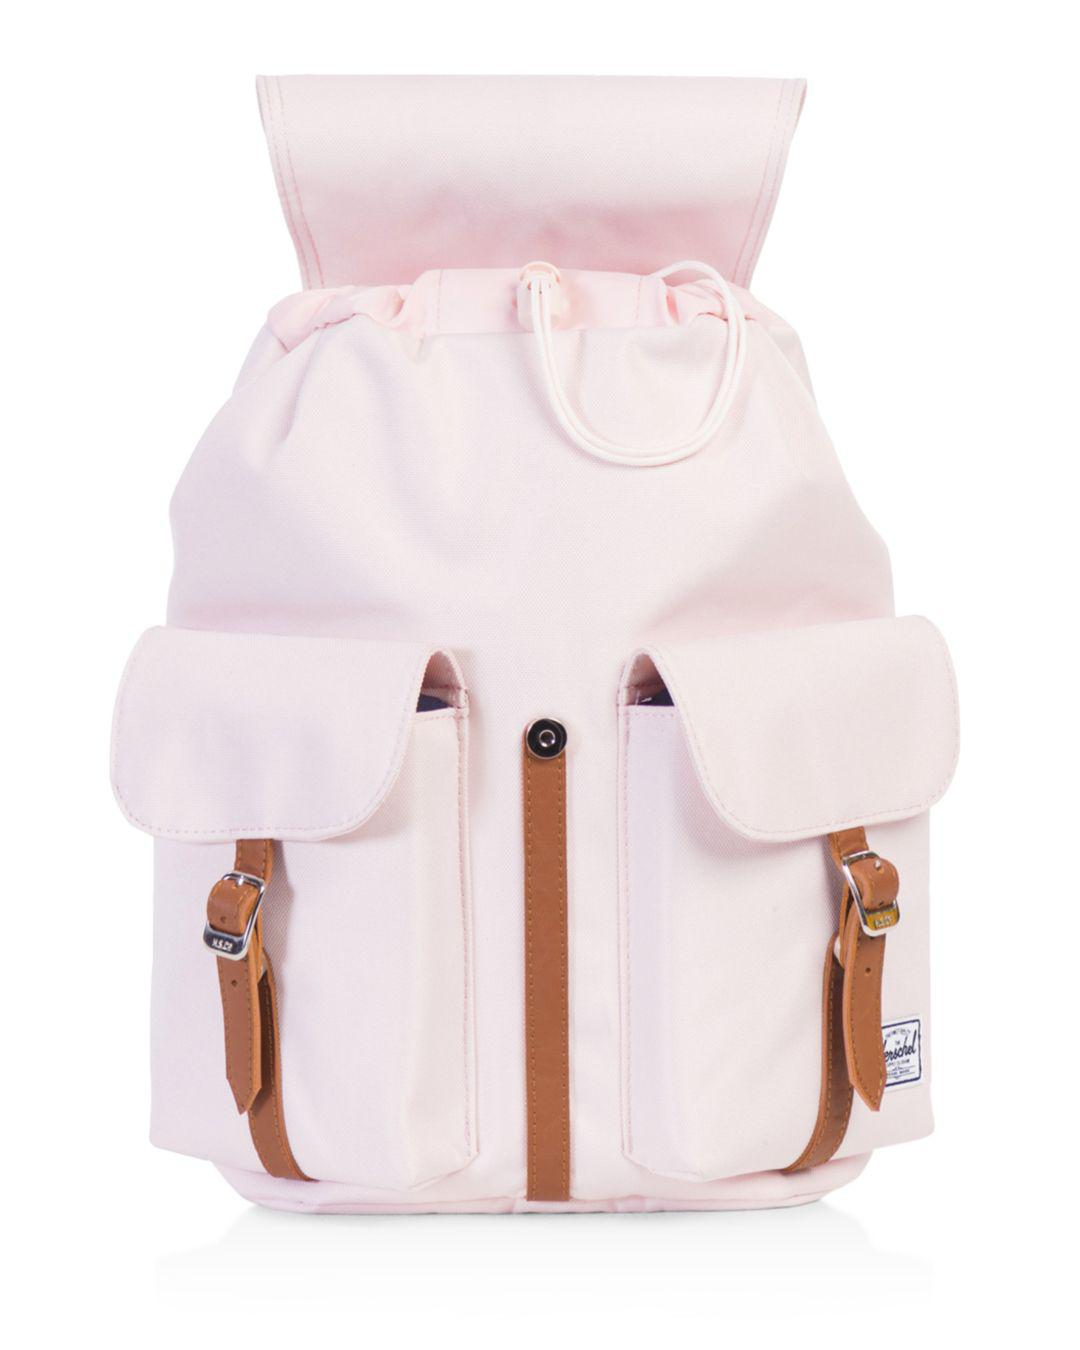 Lyst - Herschel Supply Co. Dawson s Backpack in Pink 874907d9a5c85